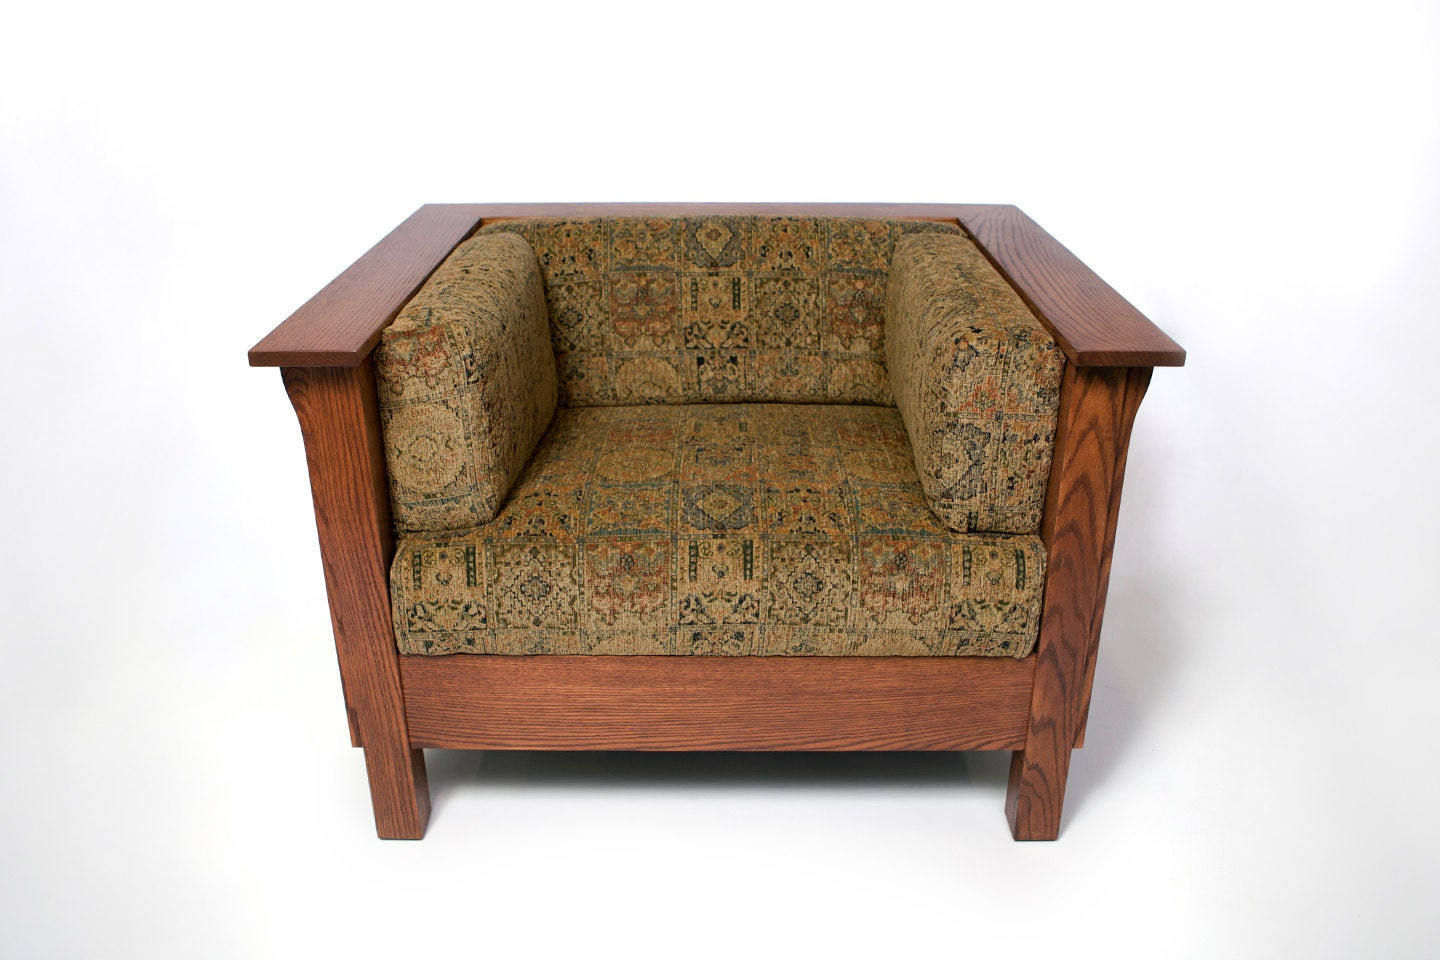 Arts and crafts furniture chair -  Zoom